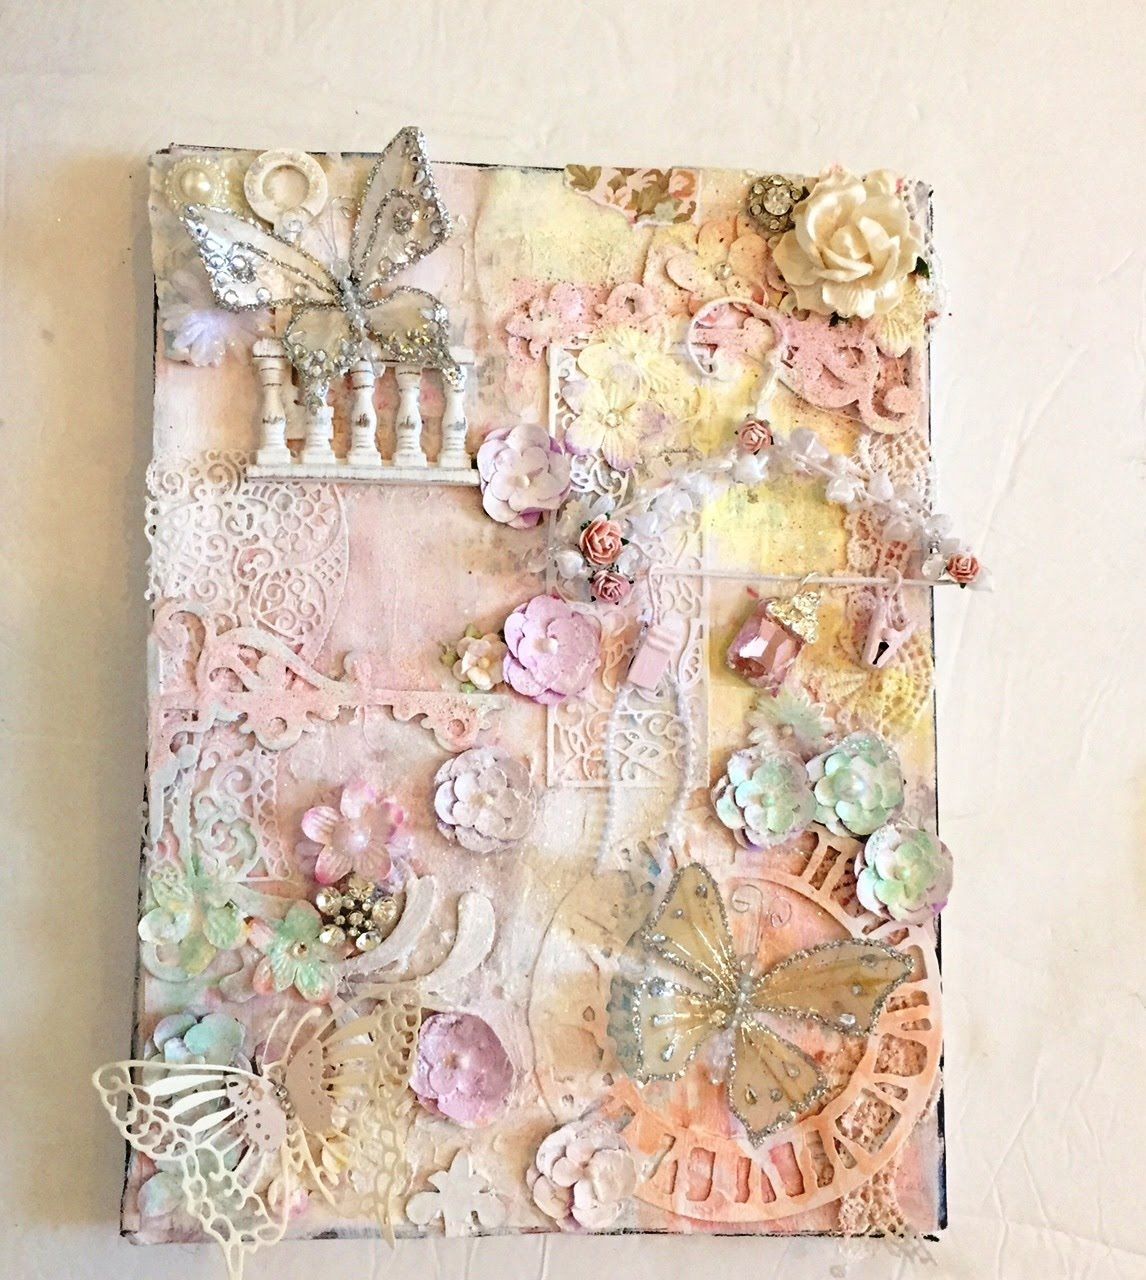 shabby chic crafts to make and sell google search shabby chic rh pinterest com Altered Shabby Chic Craft Projects DIY Shabby Chic Crafts